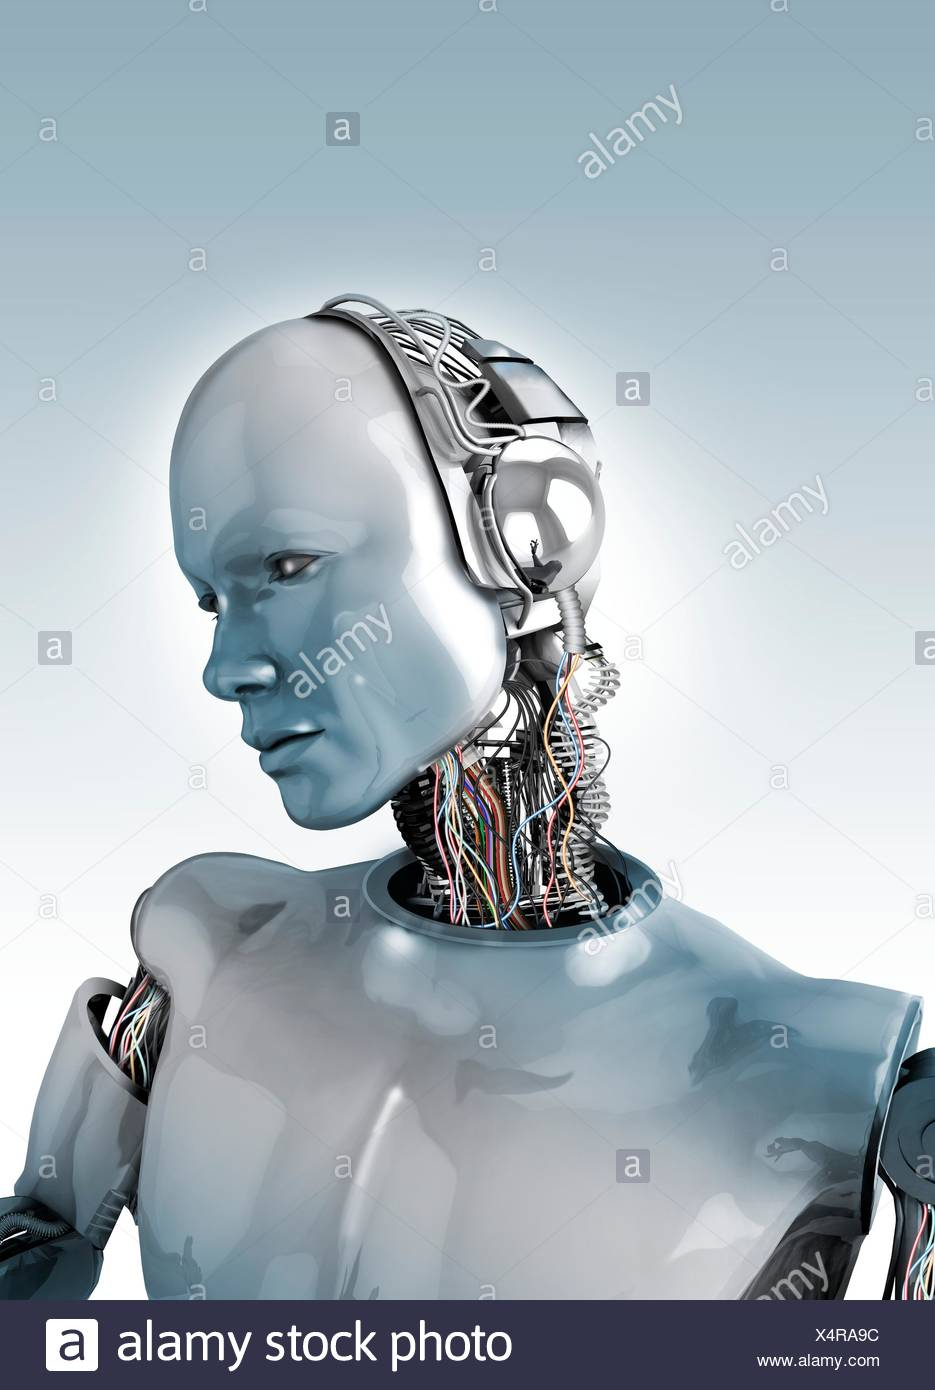 Robot with wires in neck, illustration Stock Photo: 278337512 - Alamy